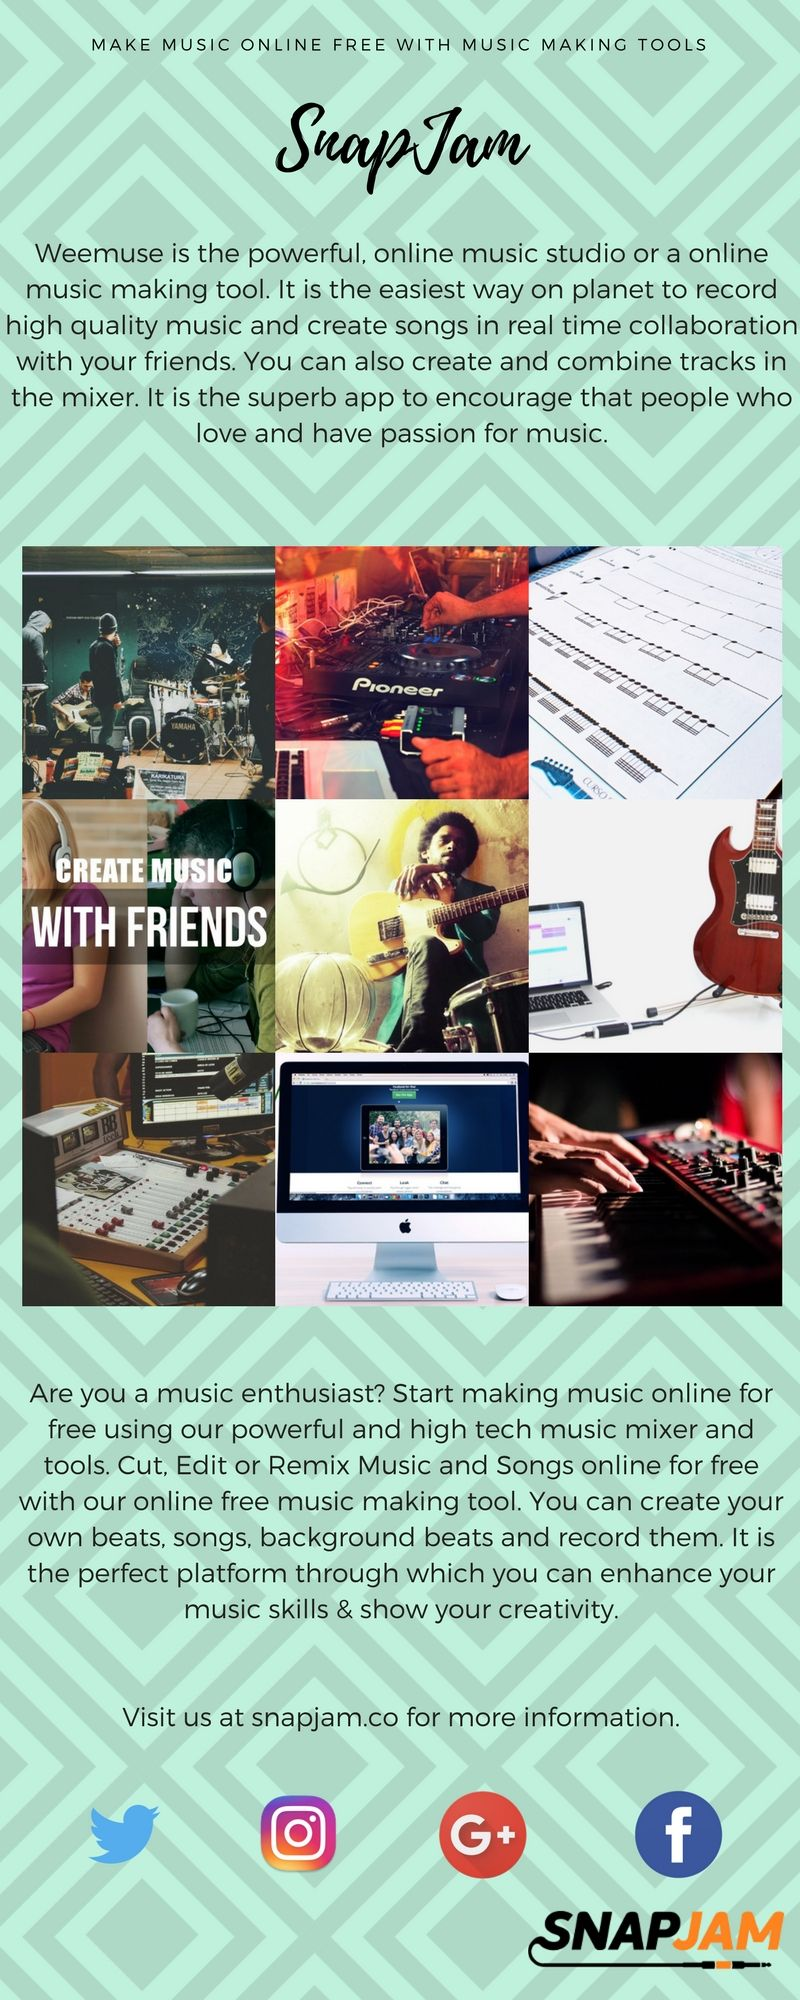 SnapJam is the best online music making tool used for music